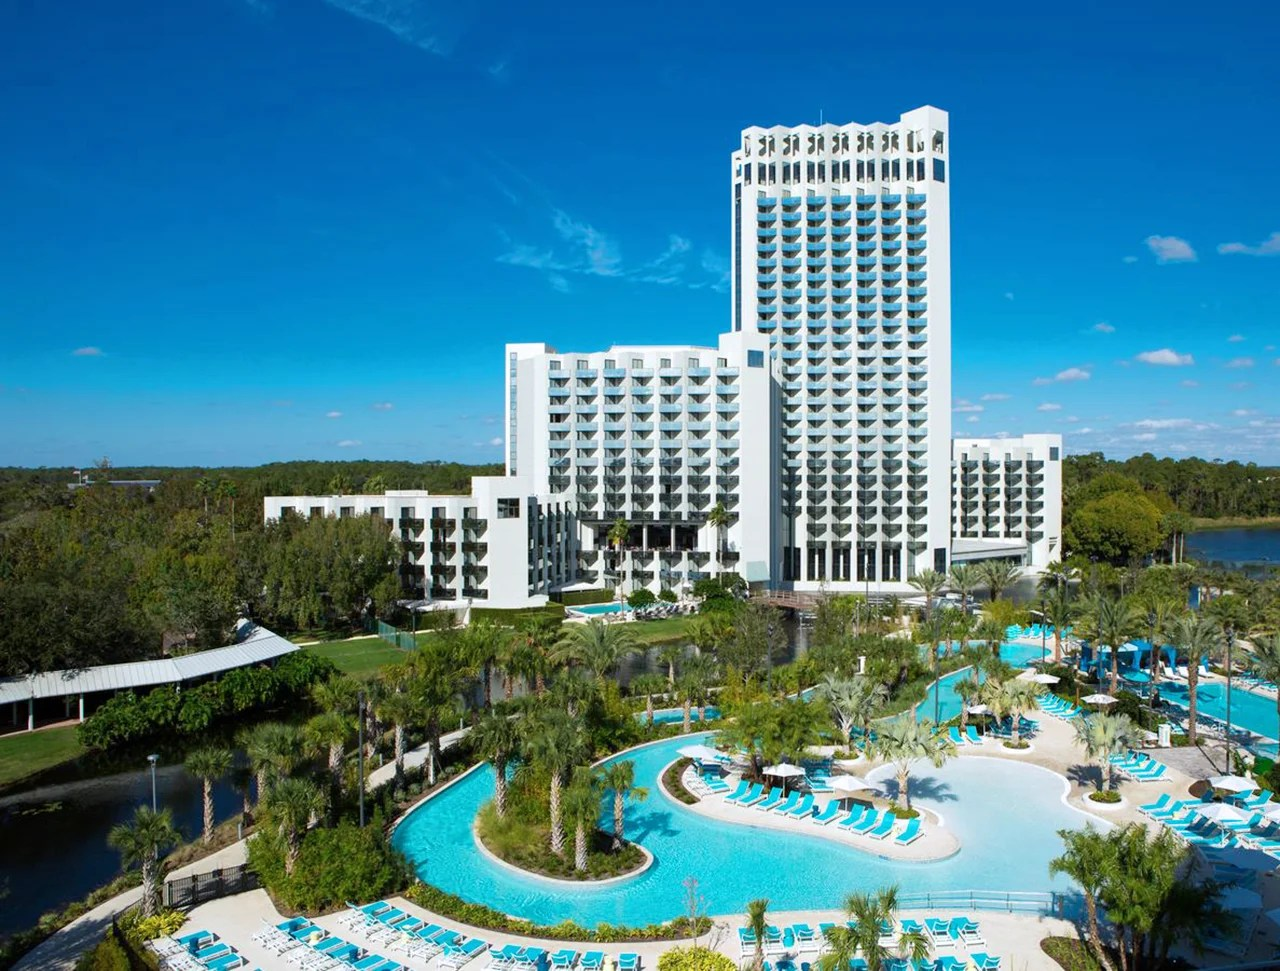 The Hilton Orlando Buena Vista Palace. (Photo courtey of Hilton Orlando Buena Vista Palace)